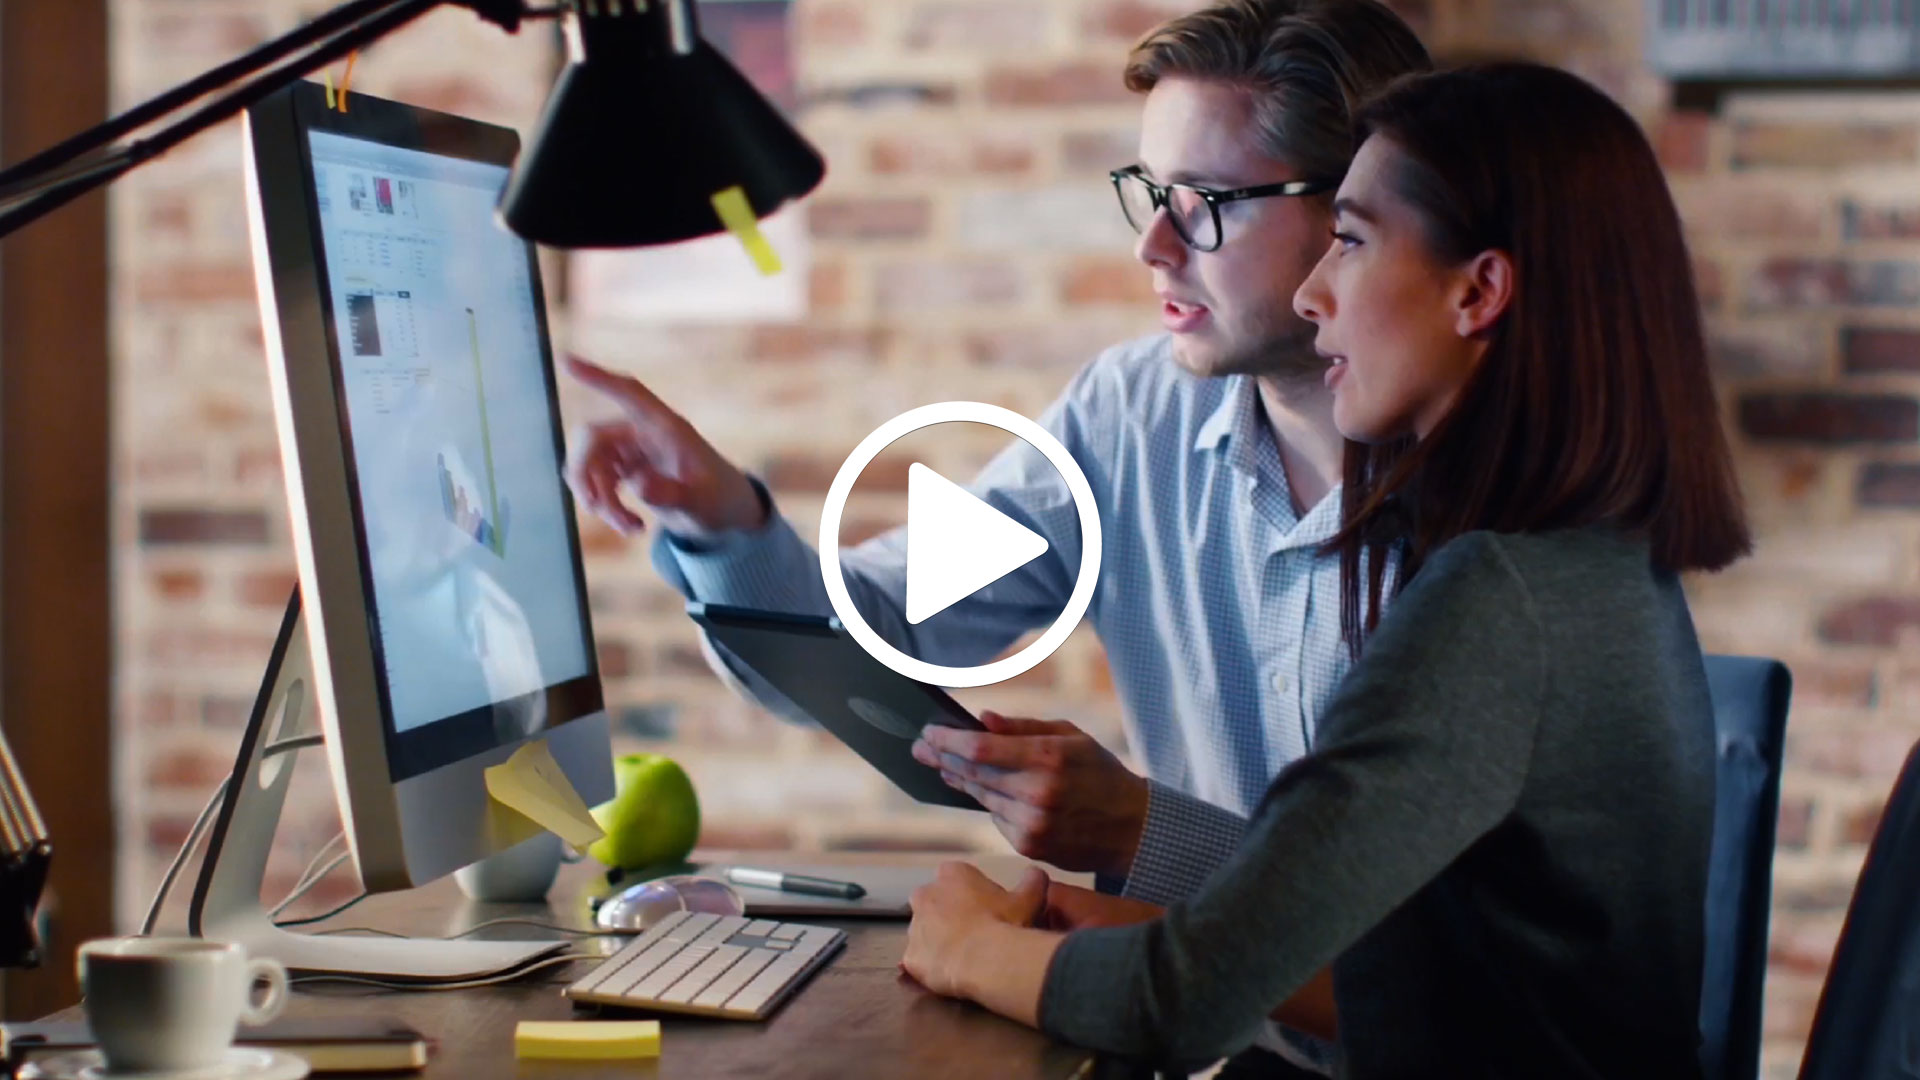 Watch our careers video for available job opening Client Executive in Portland, OR